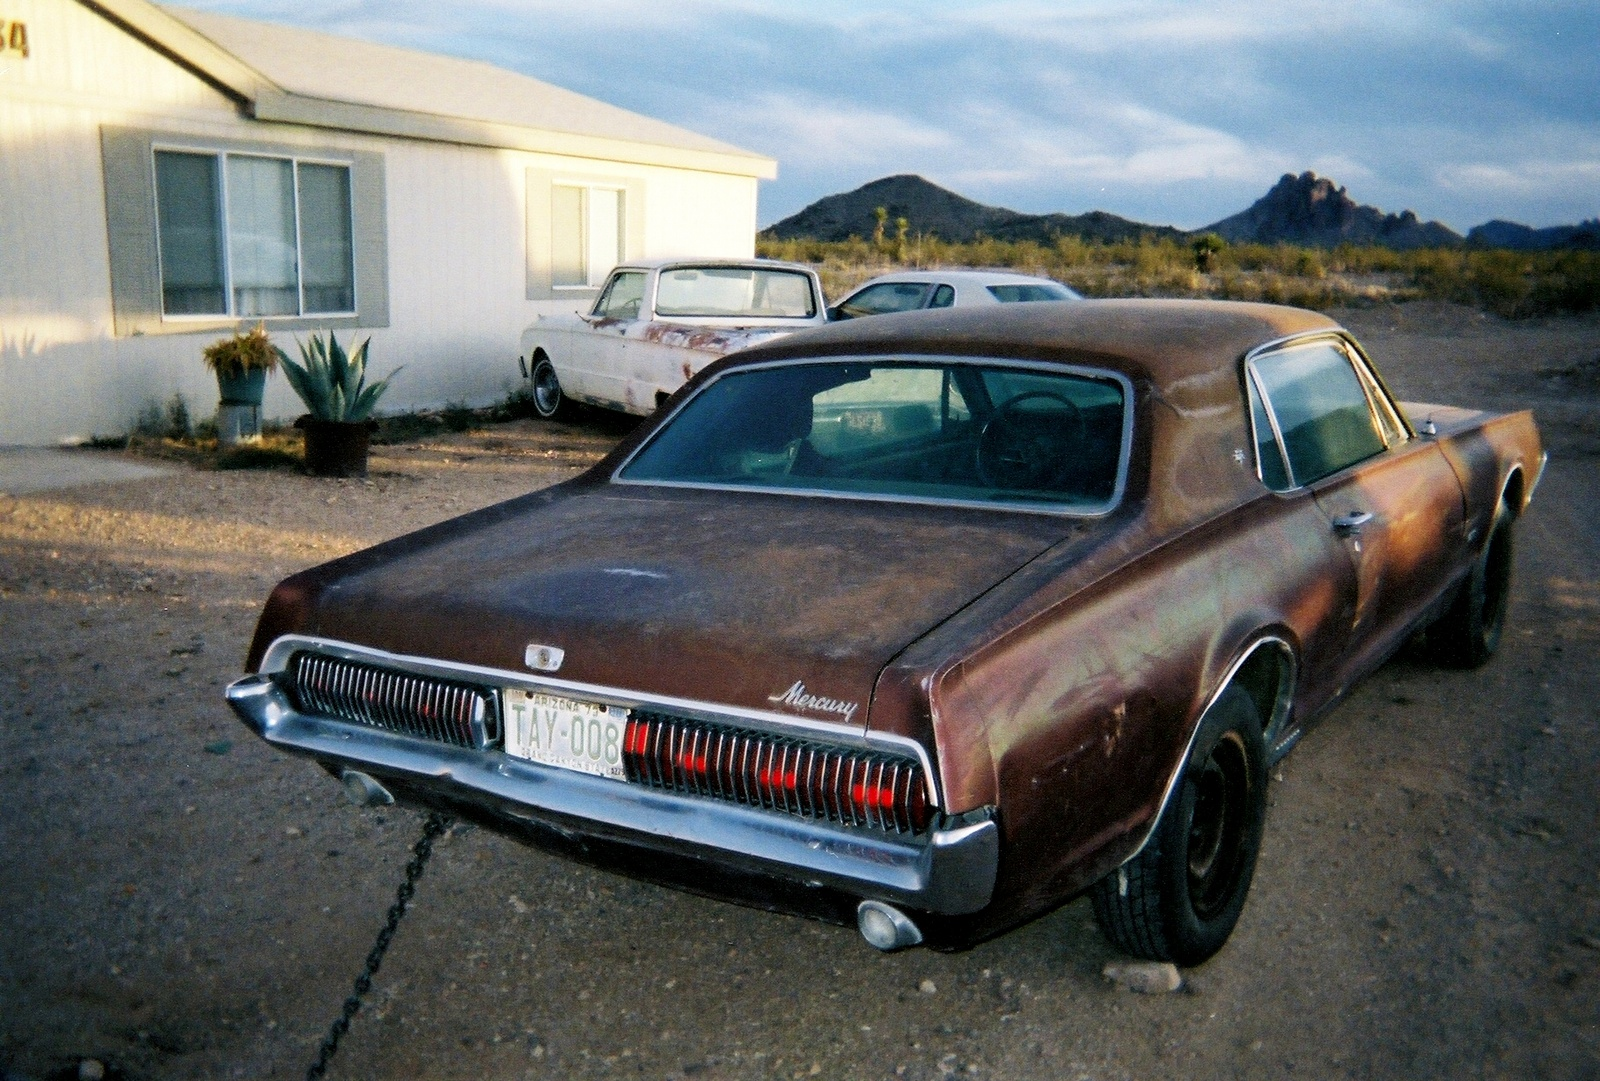 1967 Mercury Cougar, sitting in Az waiting to be picked up by the shipper, exterior